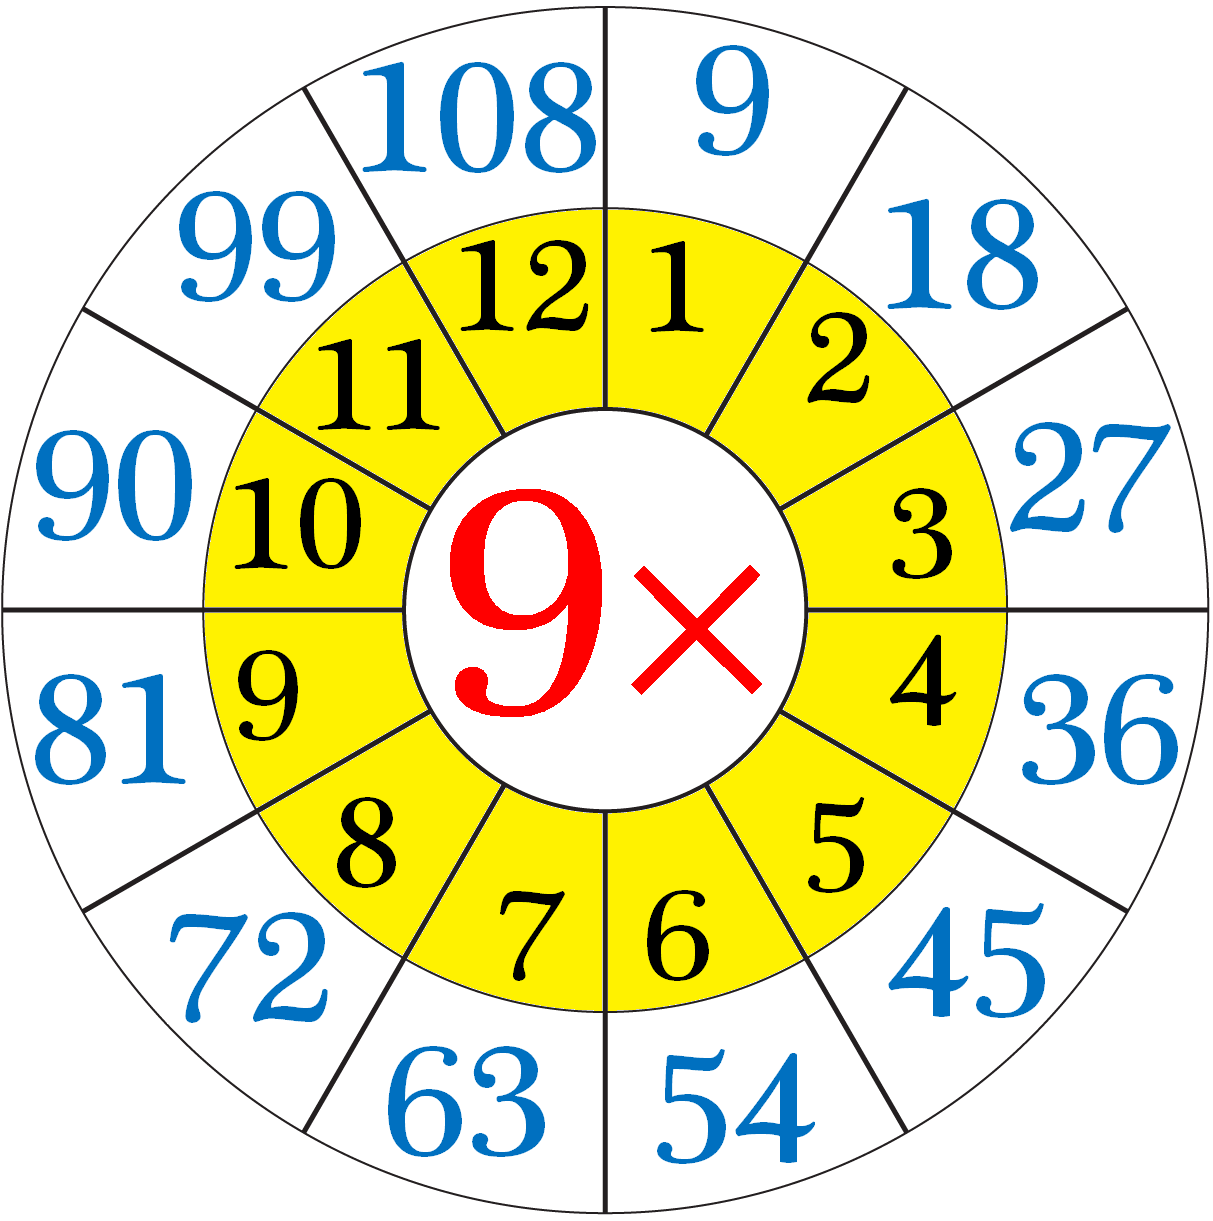 Multiplication table of 9 repeated addition by 9 s for 108 times table